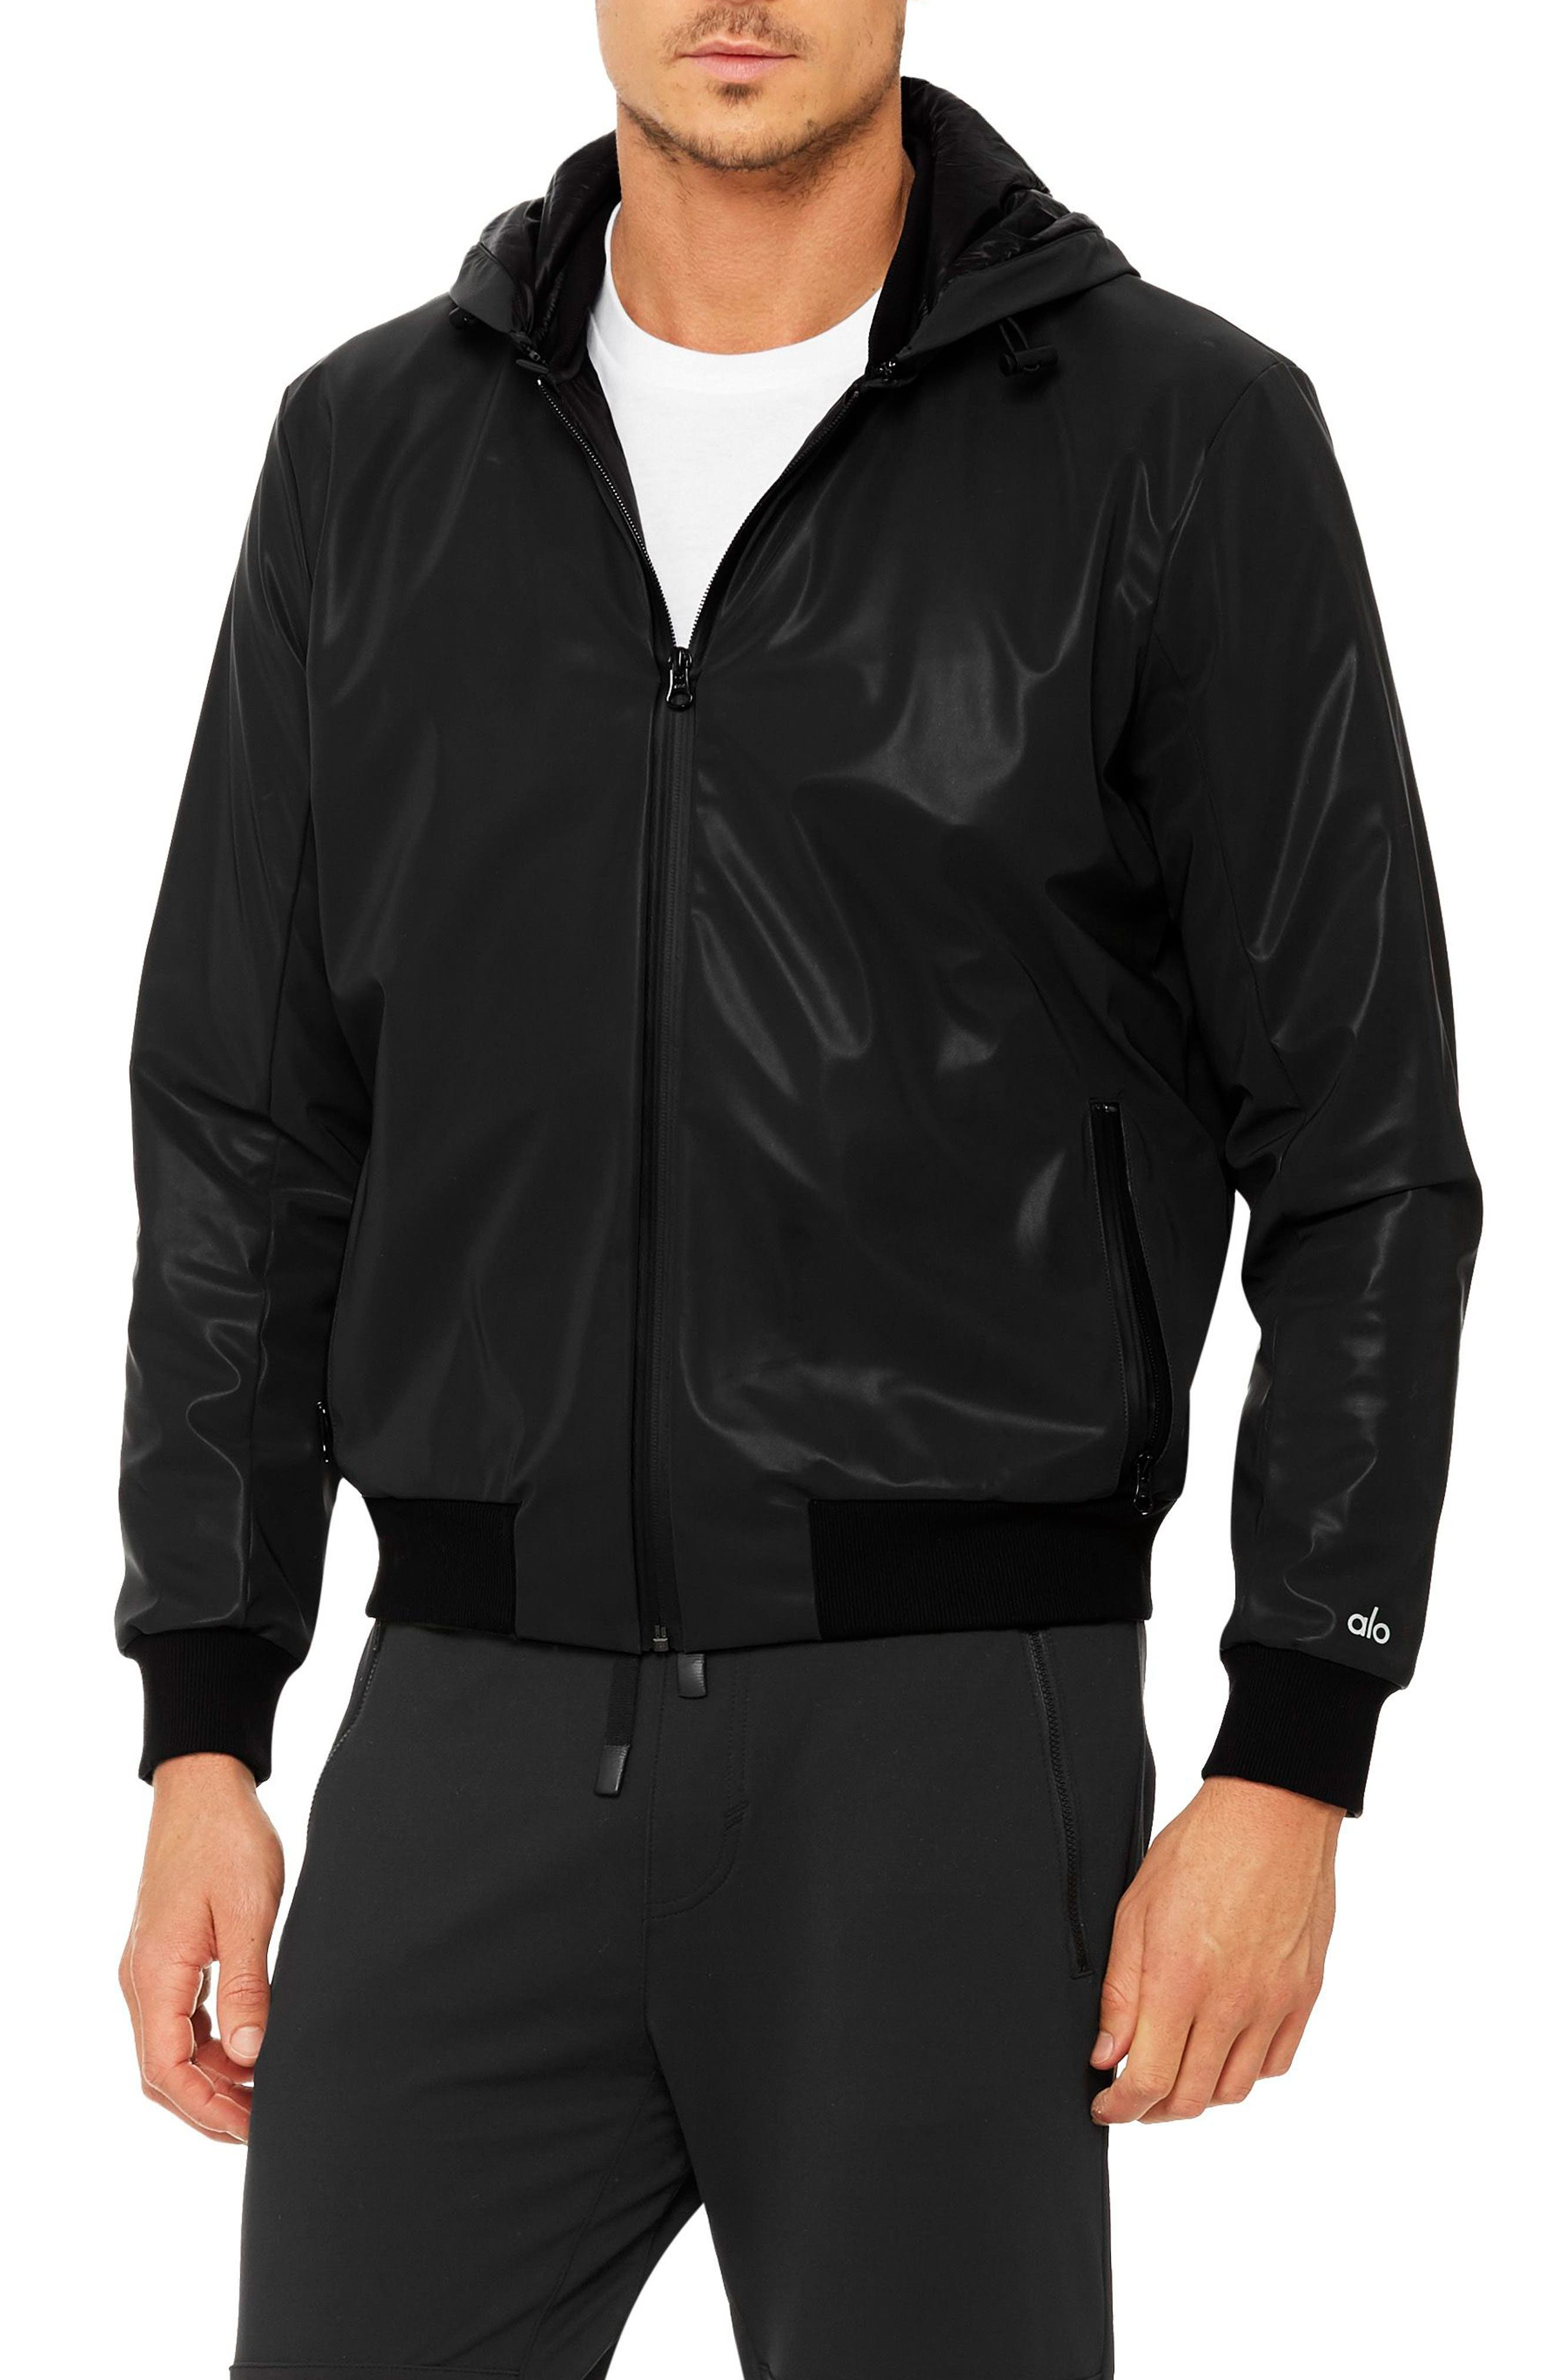 Fleet Bomber Jacket,                         Main,                         color, Black